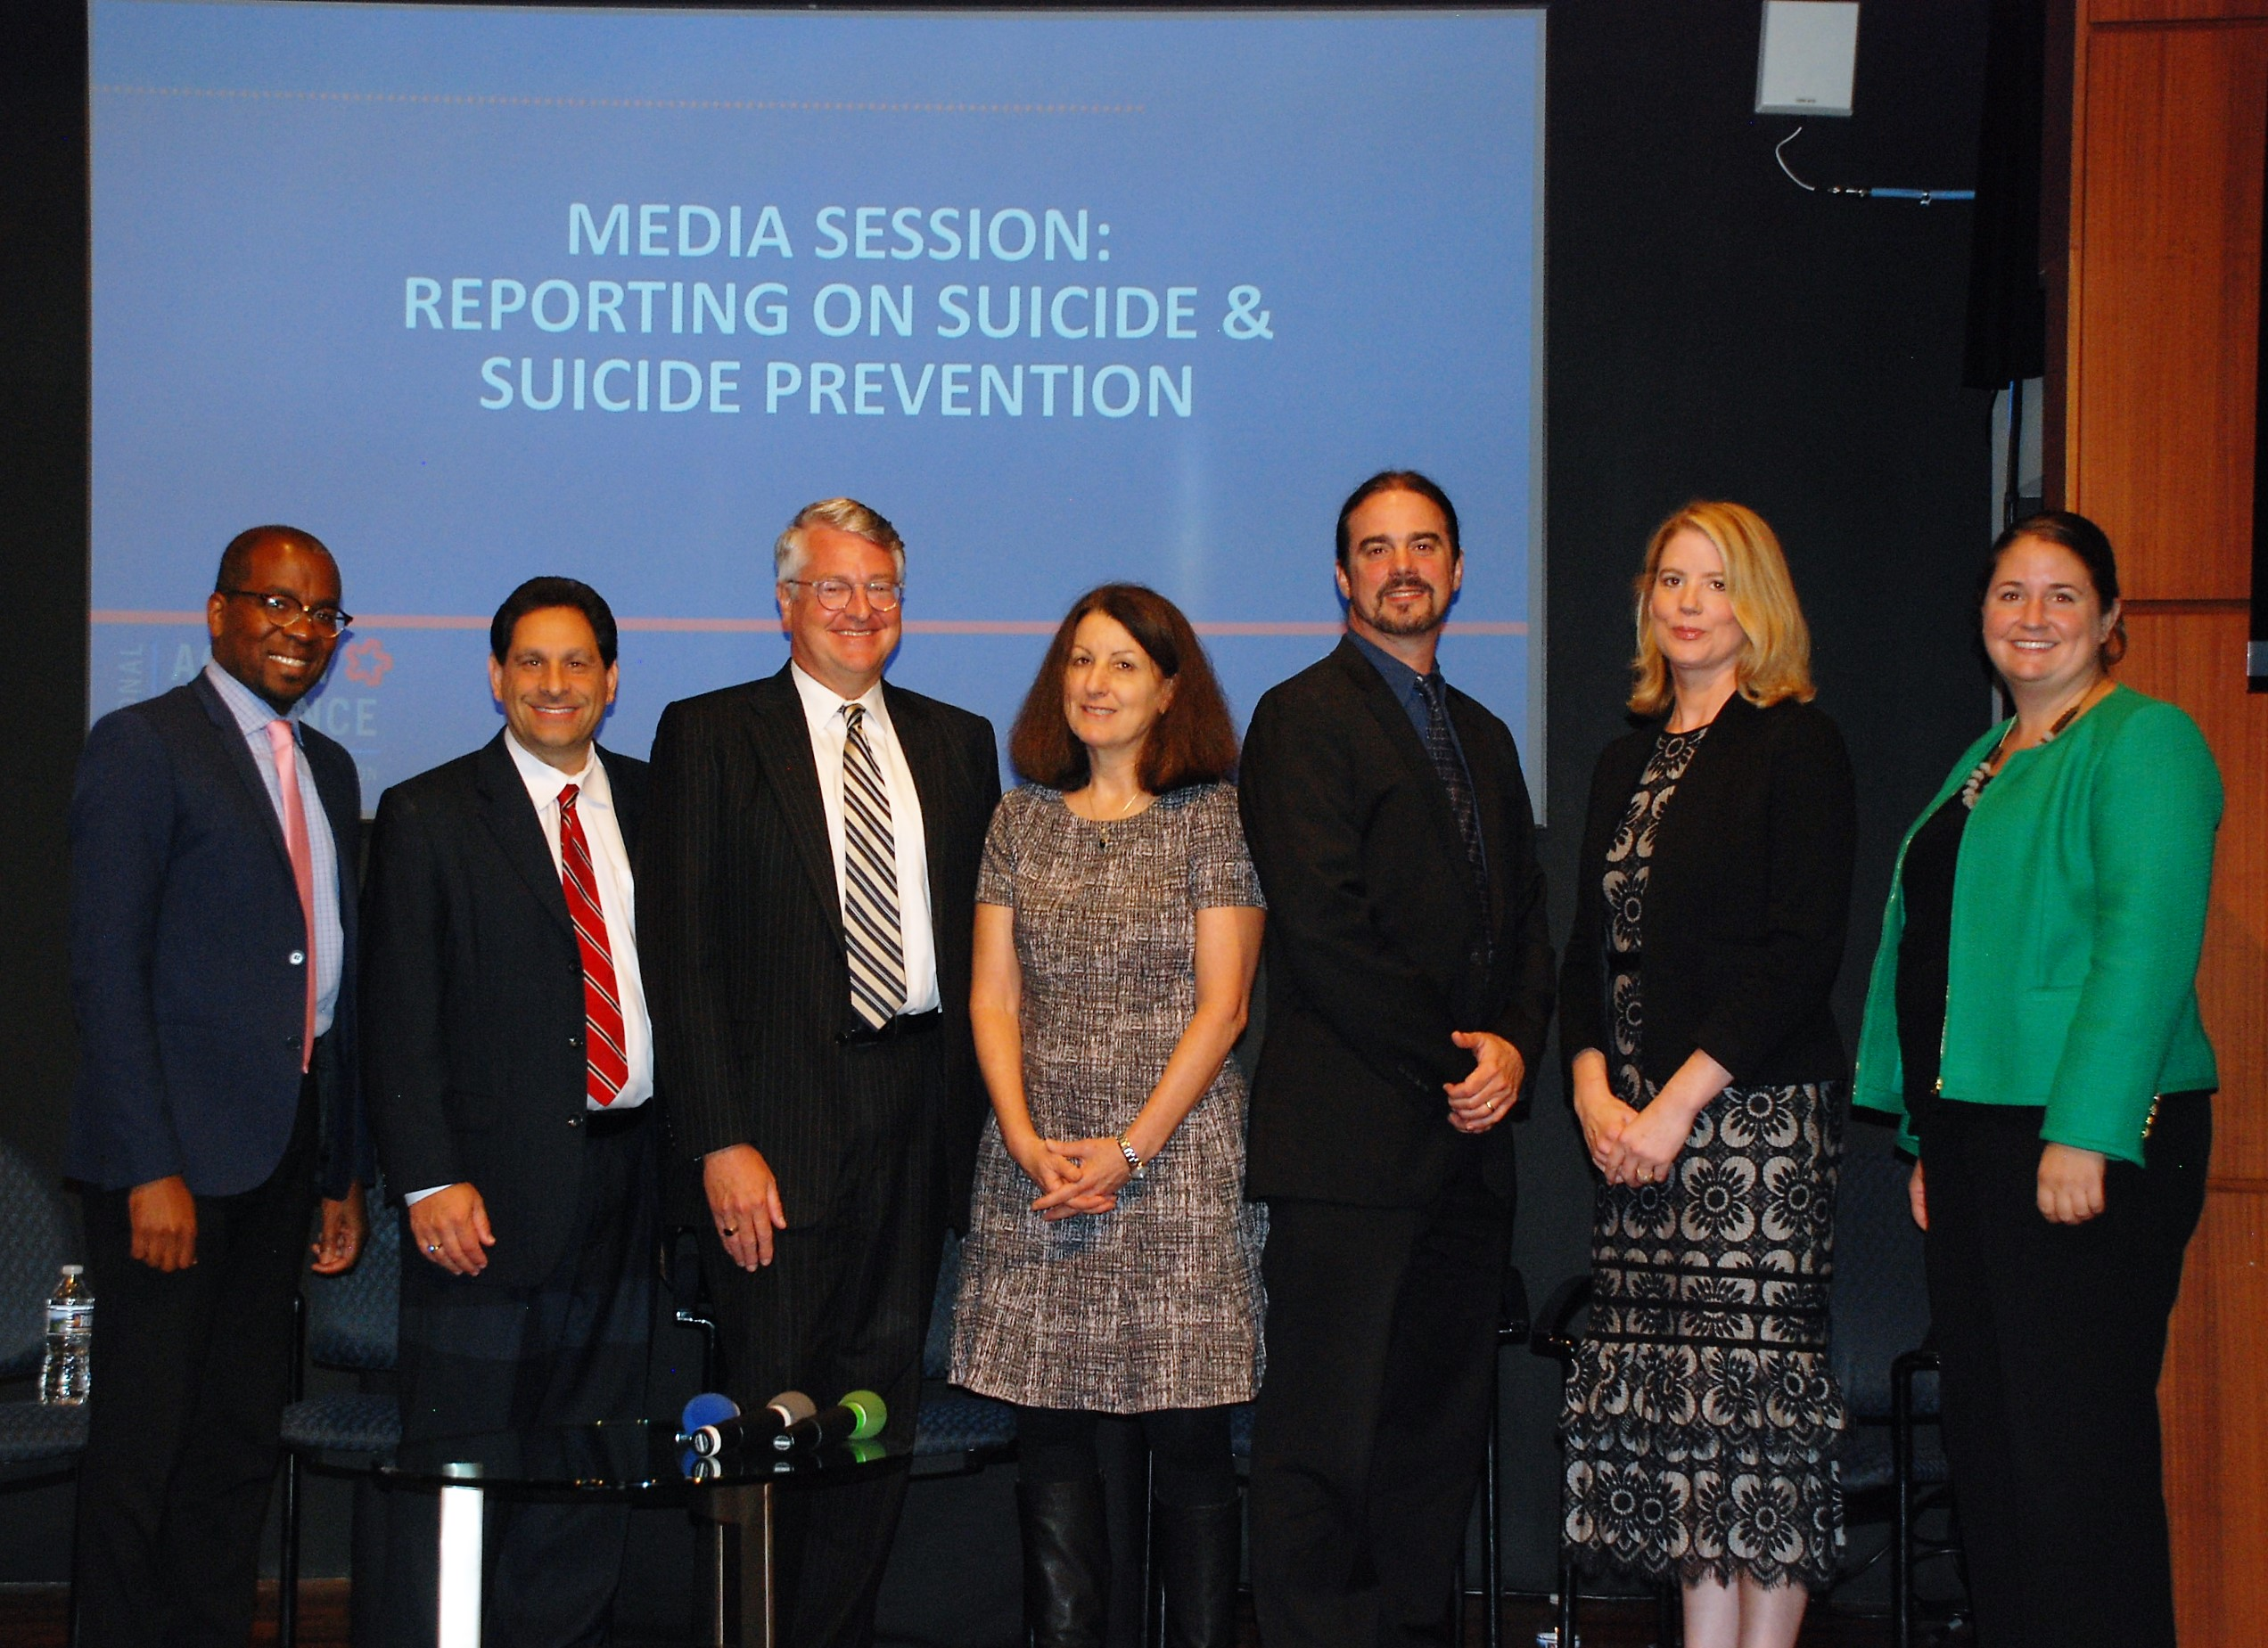 Educational Media Session: Reporting on Suicide